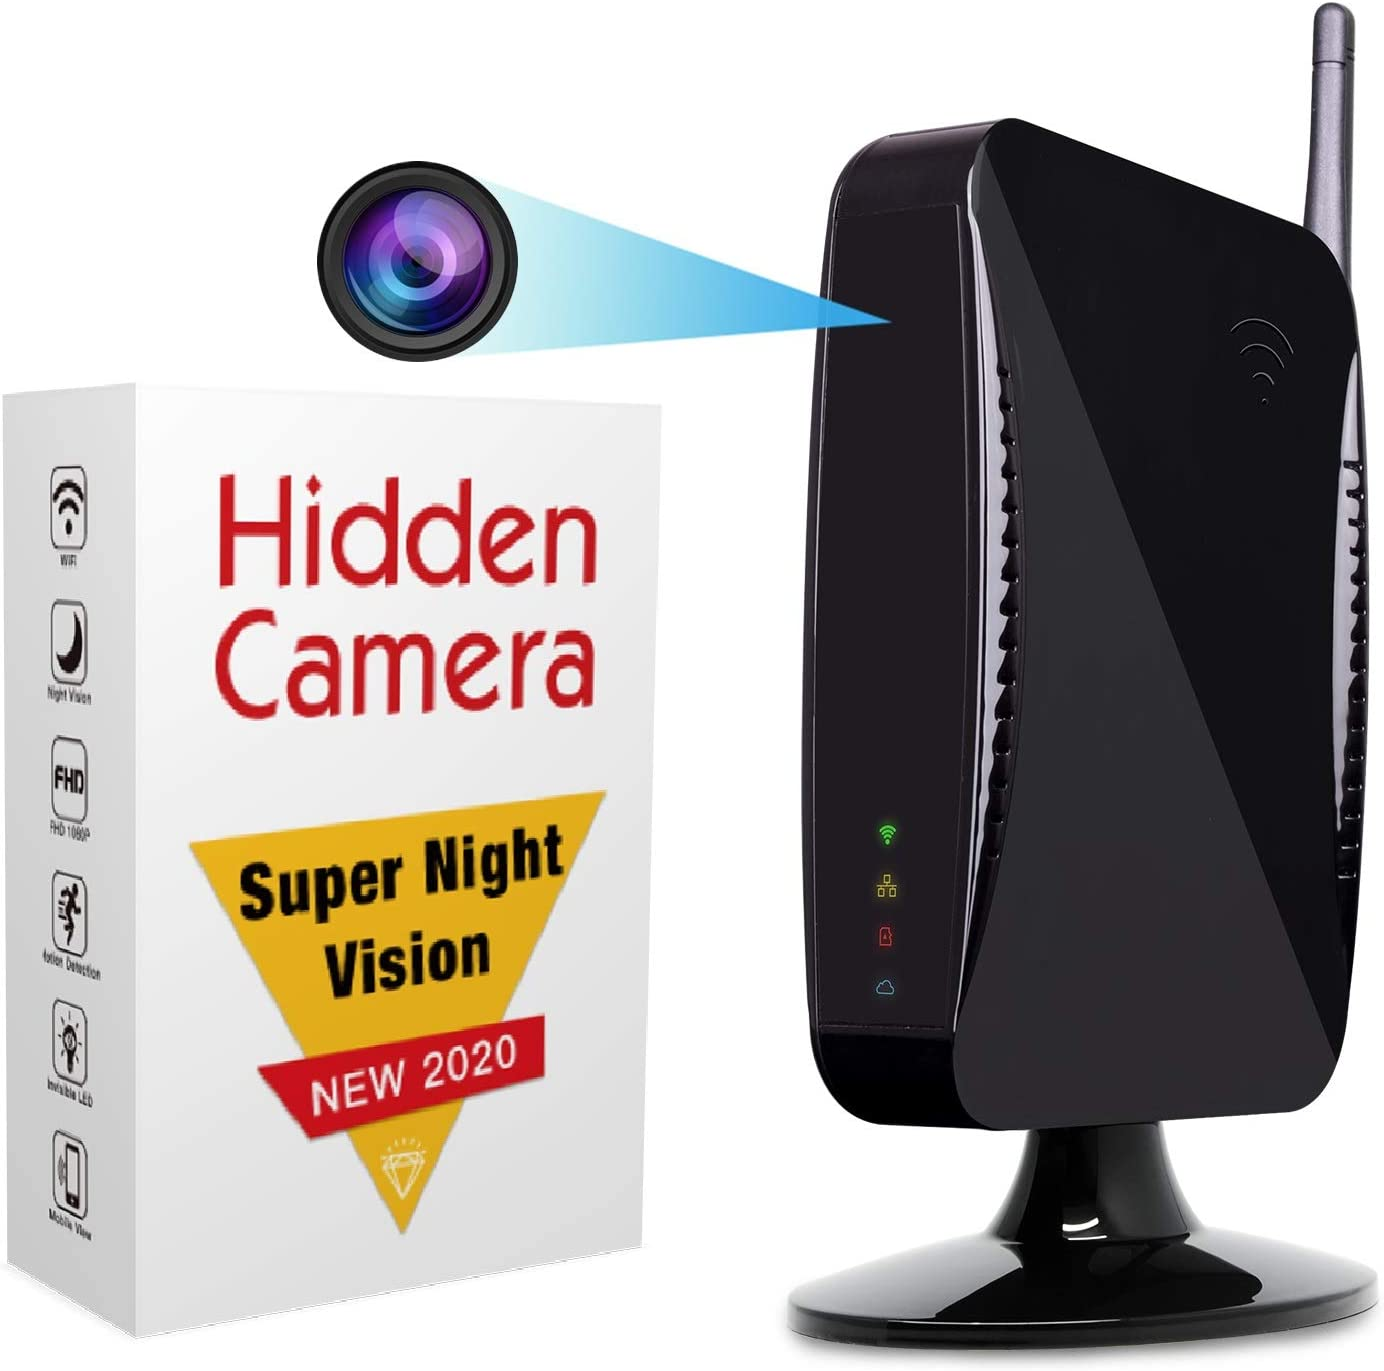 Hidden Camera - Spy Camera by ISR, WiFi 1080p HD Spy Cam, Remote Access App, Night Vision, Motion Detection, Wireless Security System